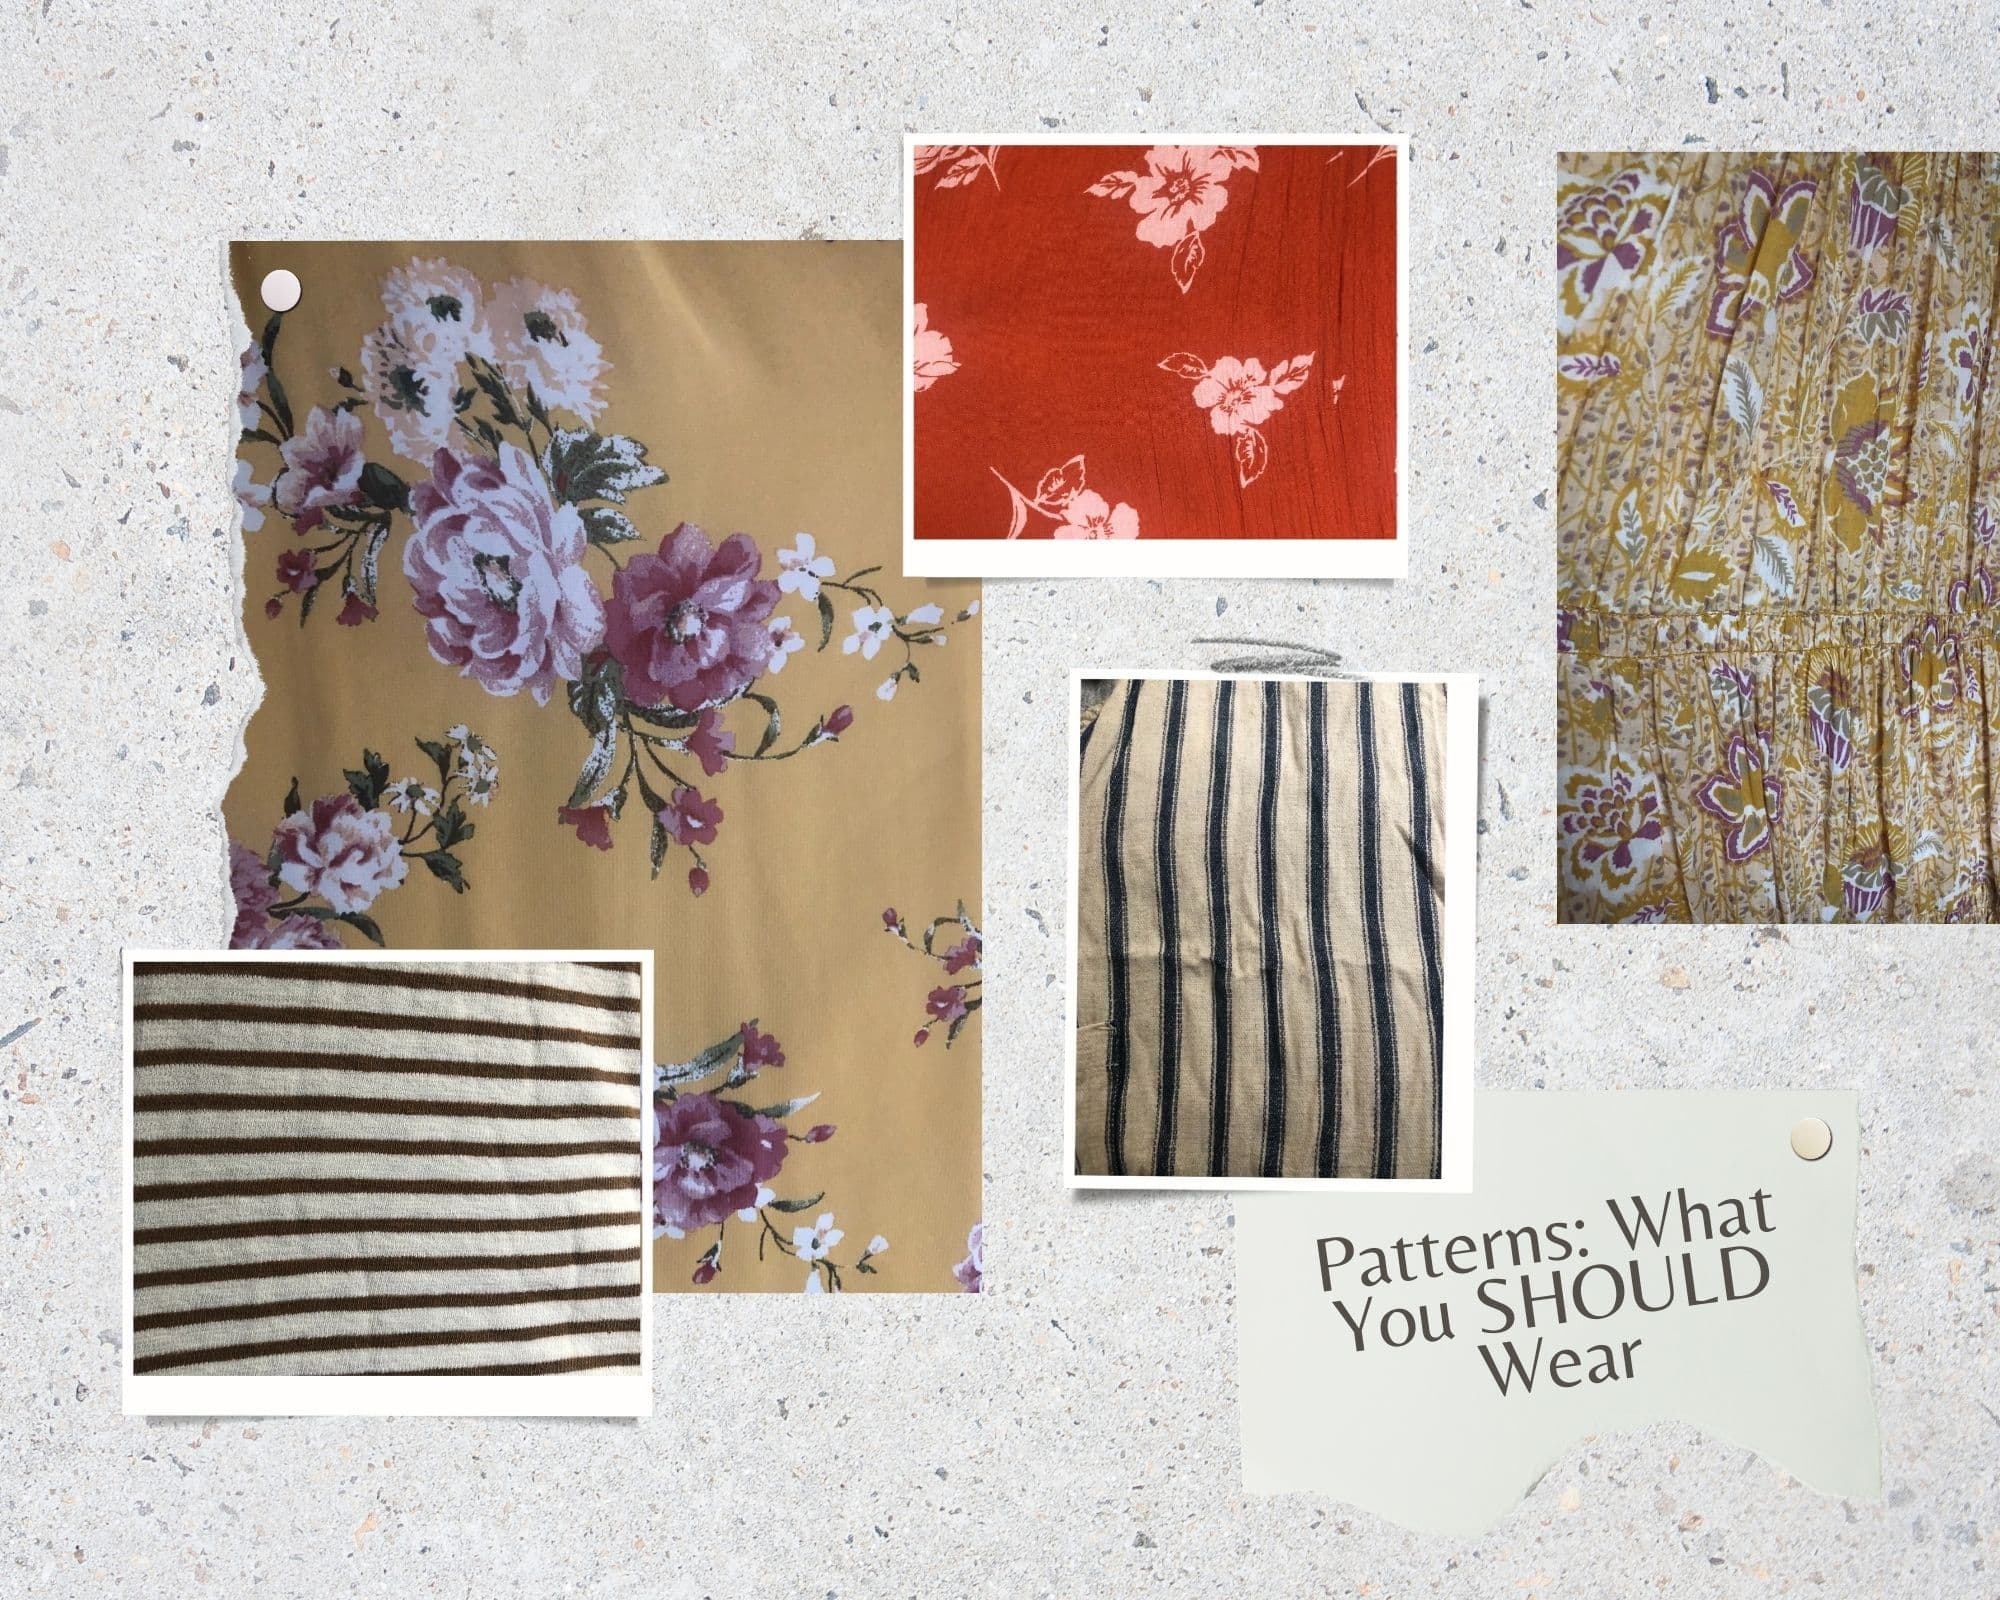 Collage of patterns that look great in photos. stripes and florals